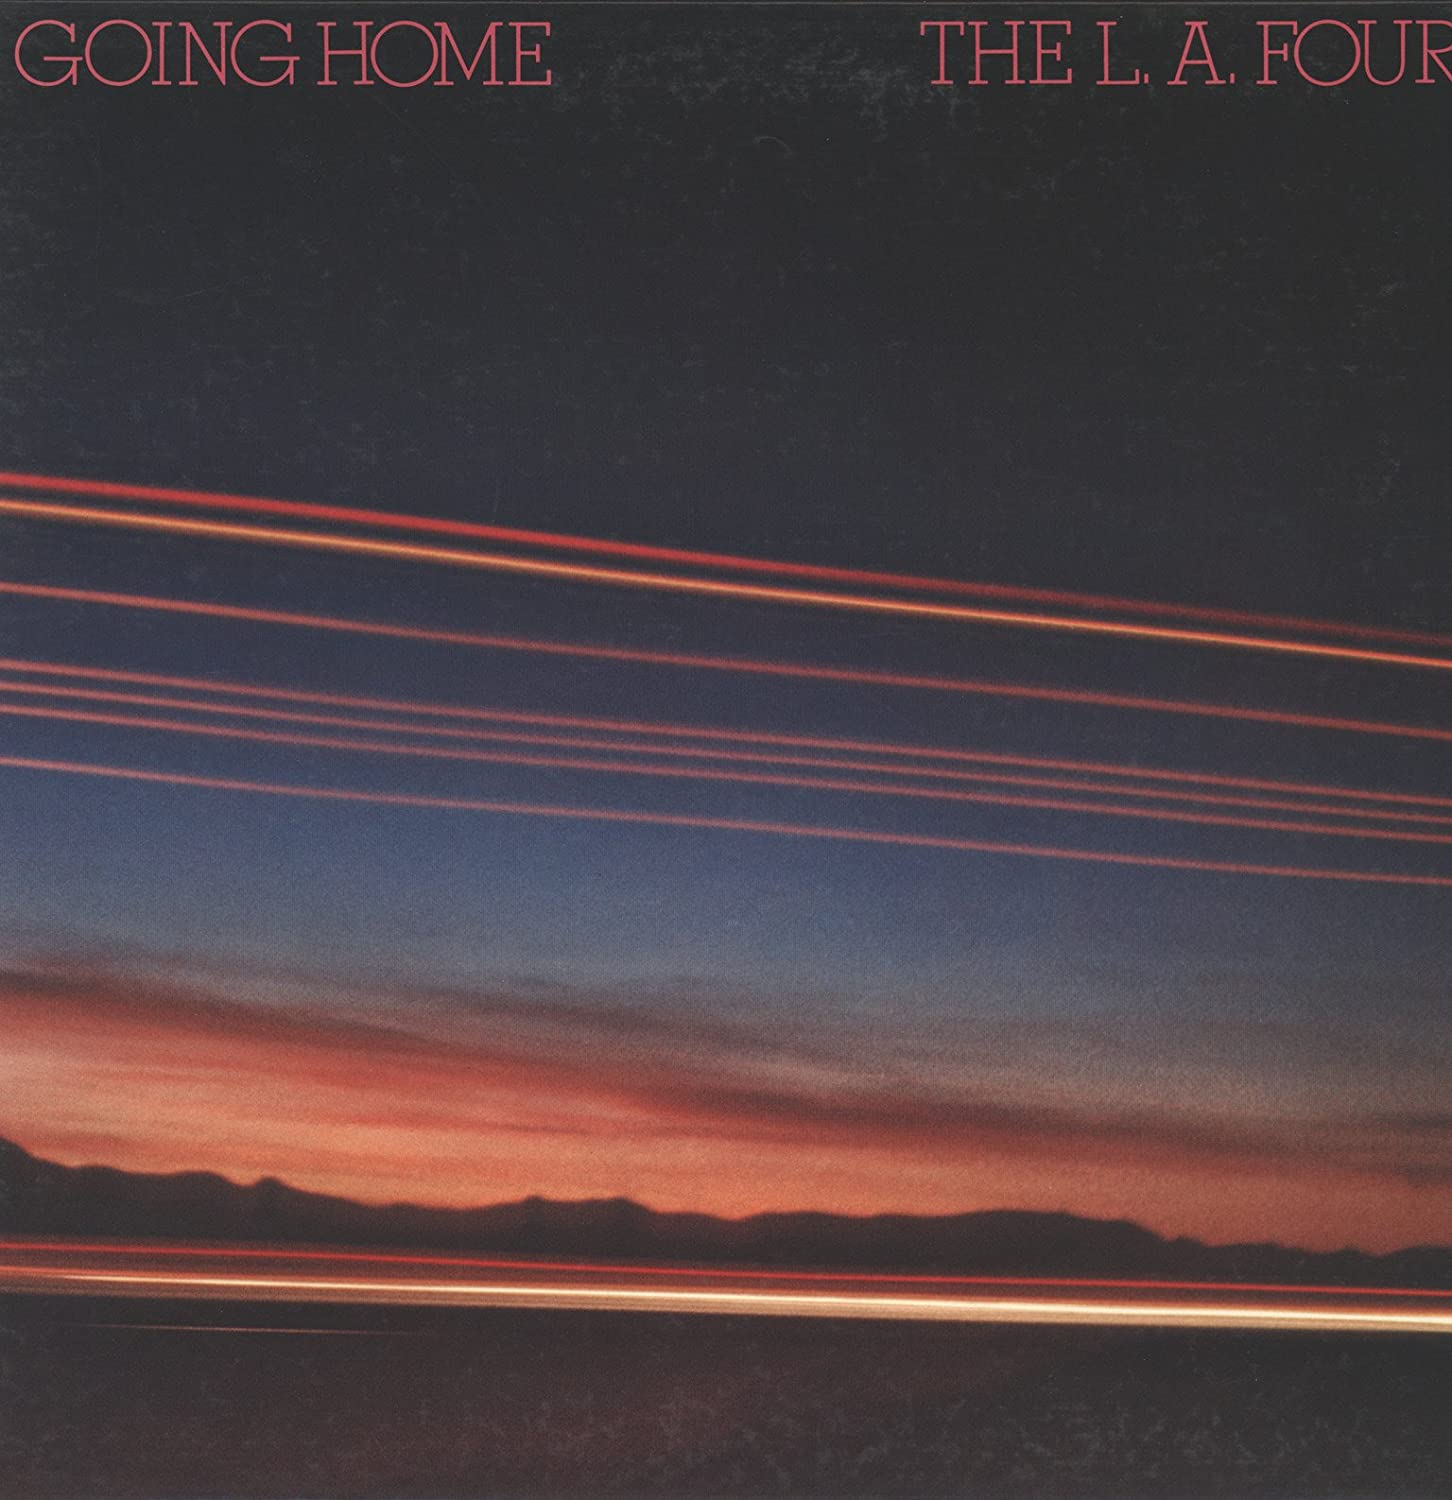 L.A. Four : Going Home (Japnese Direct to Disc)